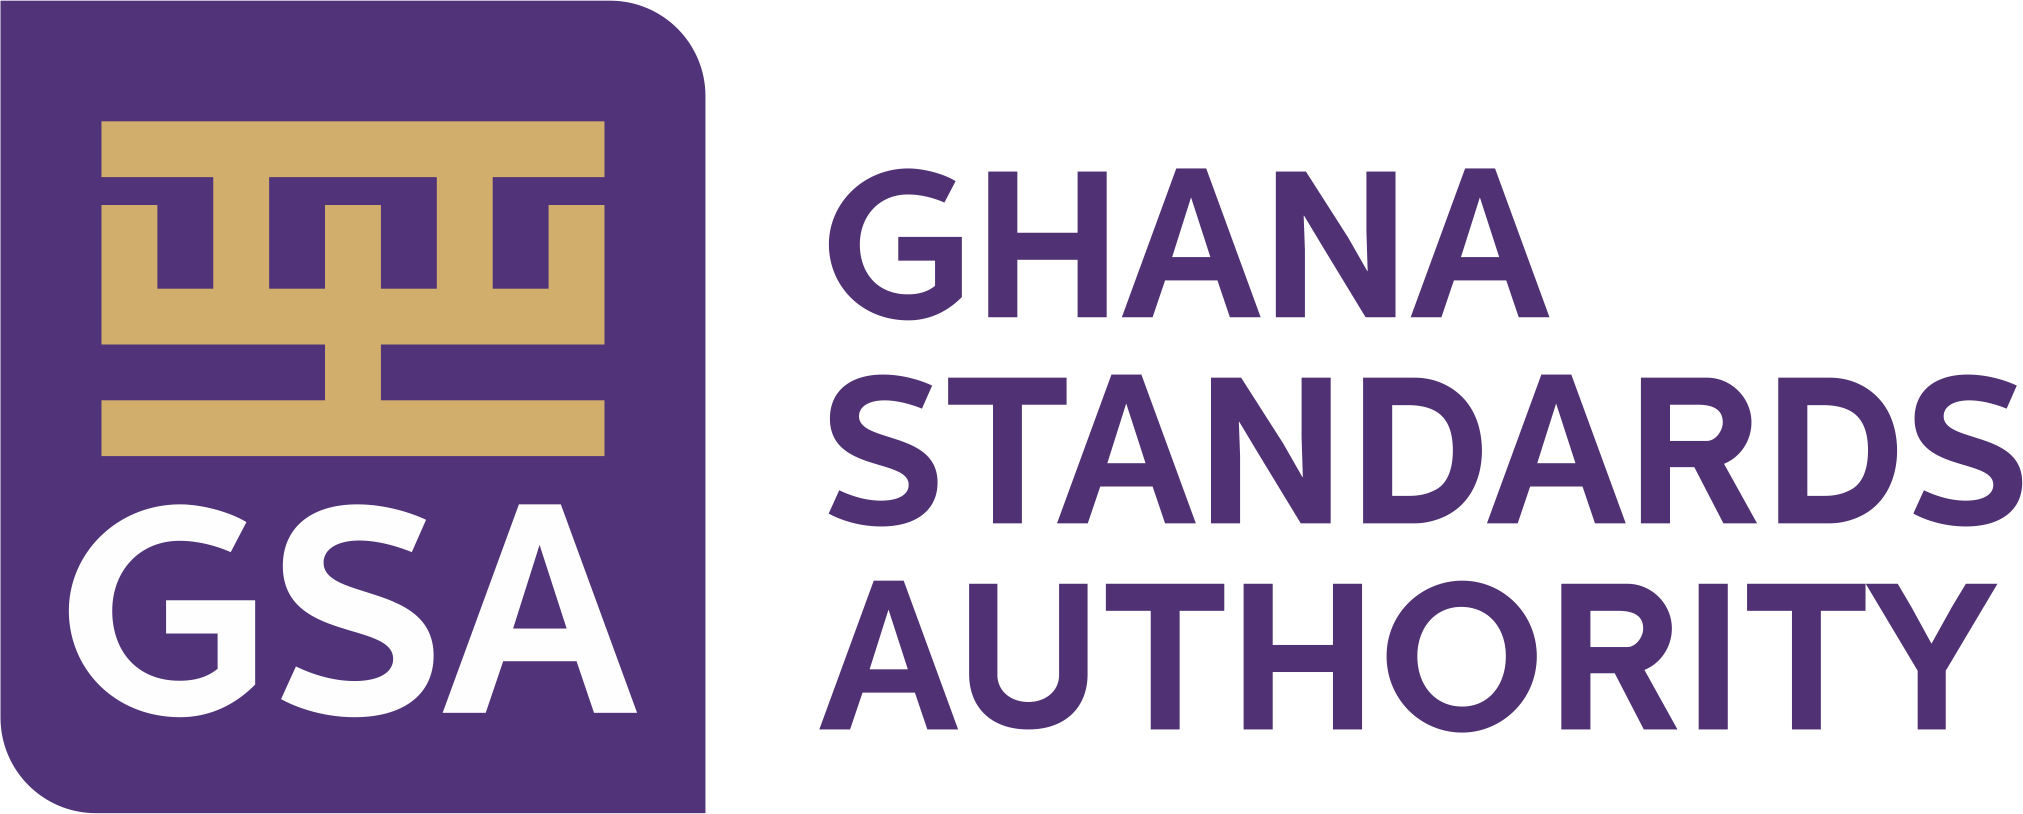 Certification Ghana Standards Authority